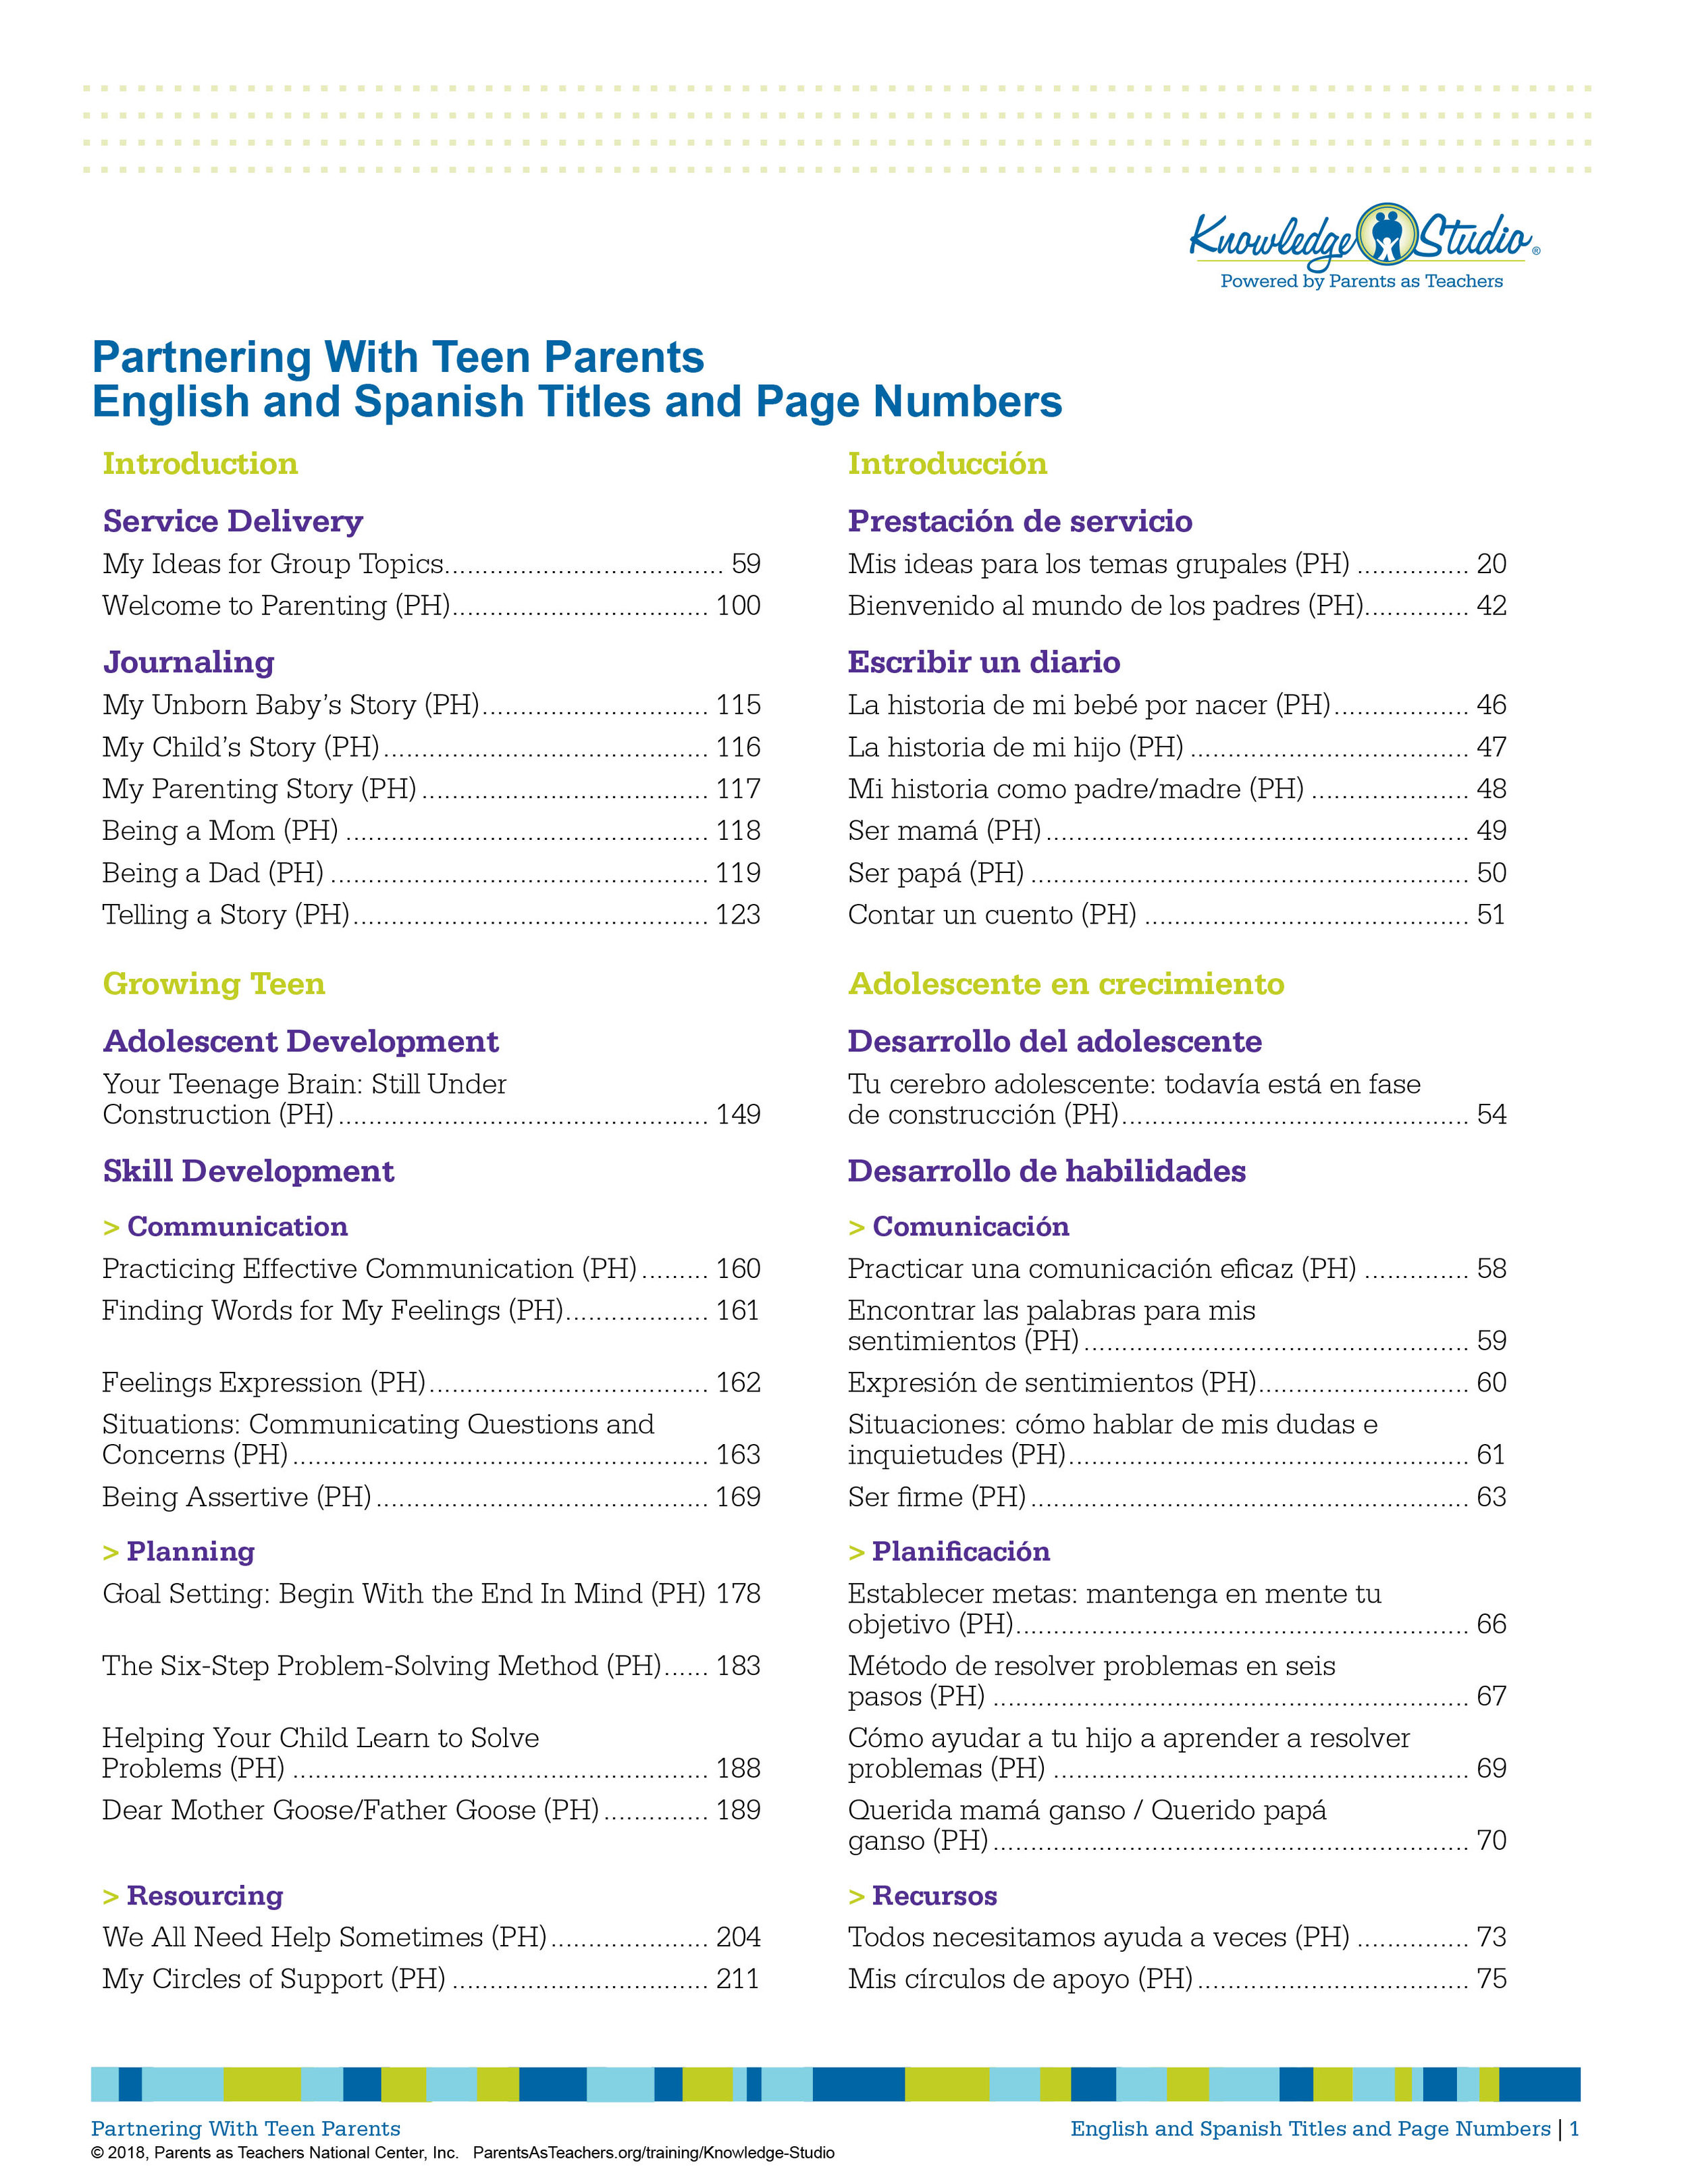 Partnering With Teen Parents: English and Spanish Titles and Page Numbers